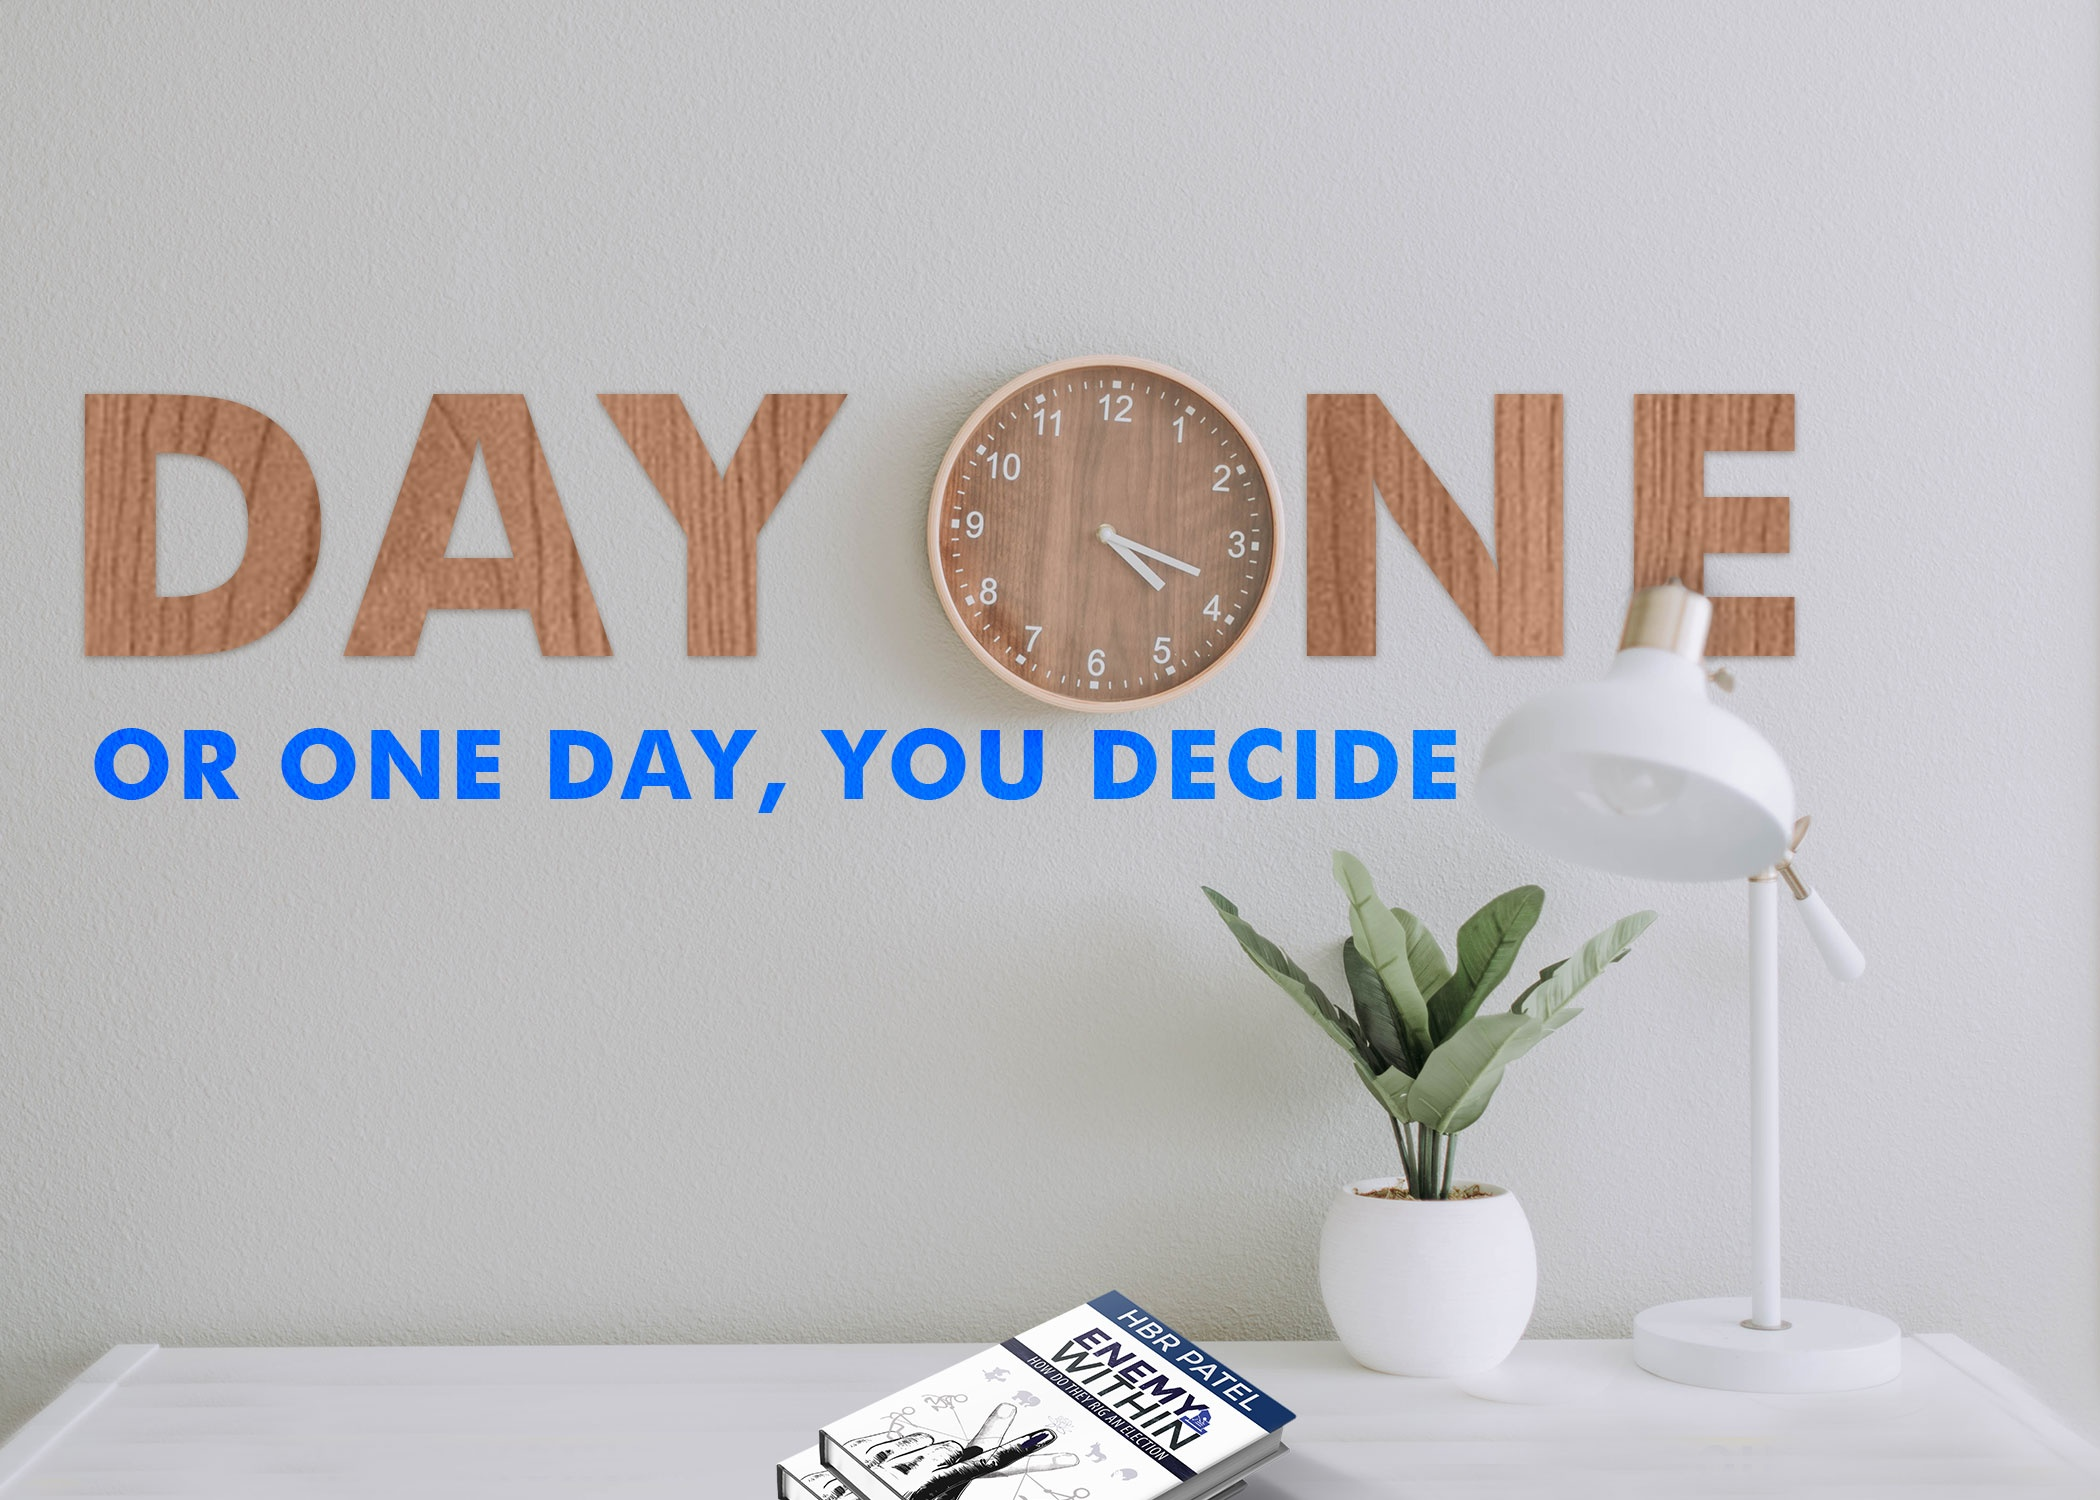 What does 'One Day or Day One. You decide' mean? - Quora